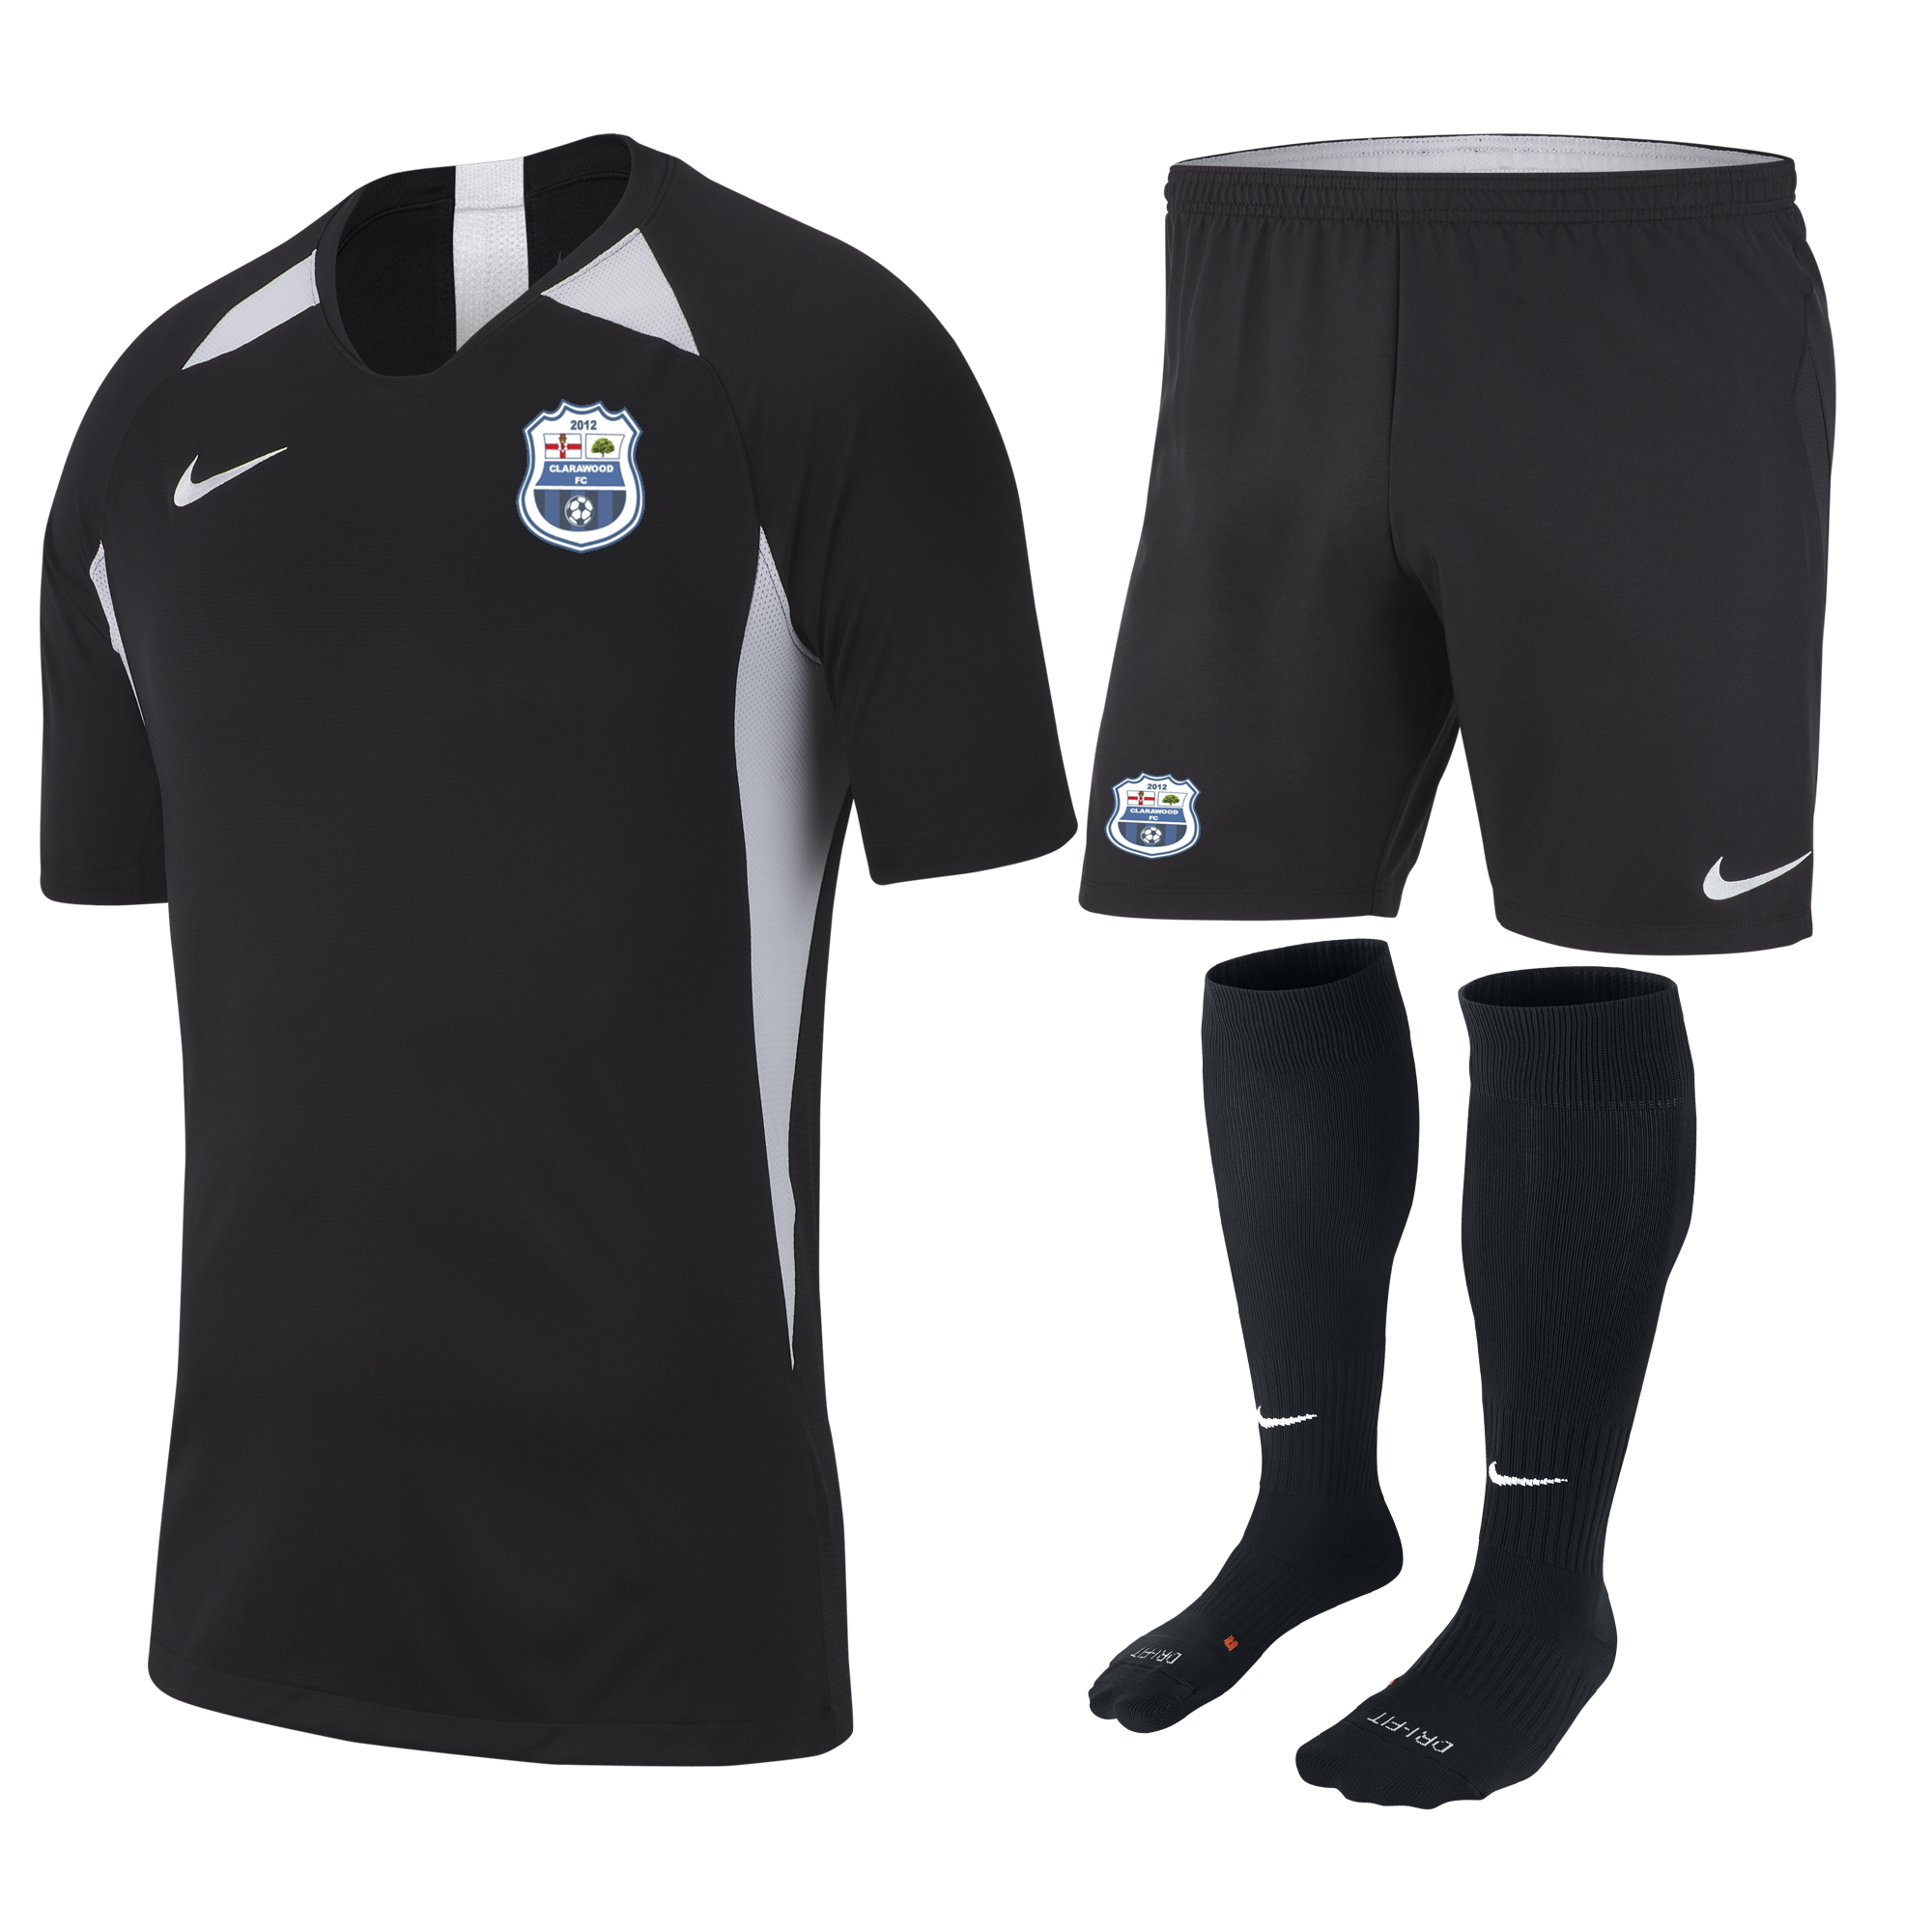 clarawood fc coaches training kit 36396 p